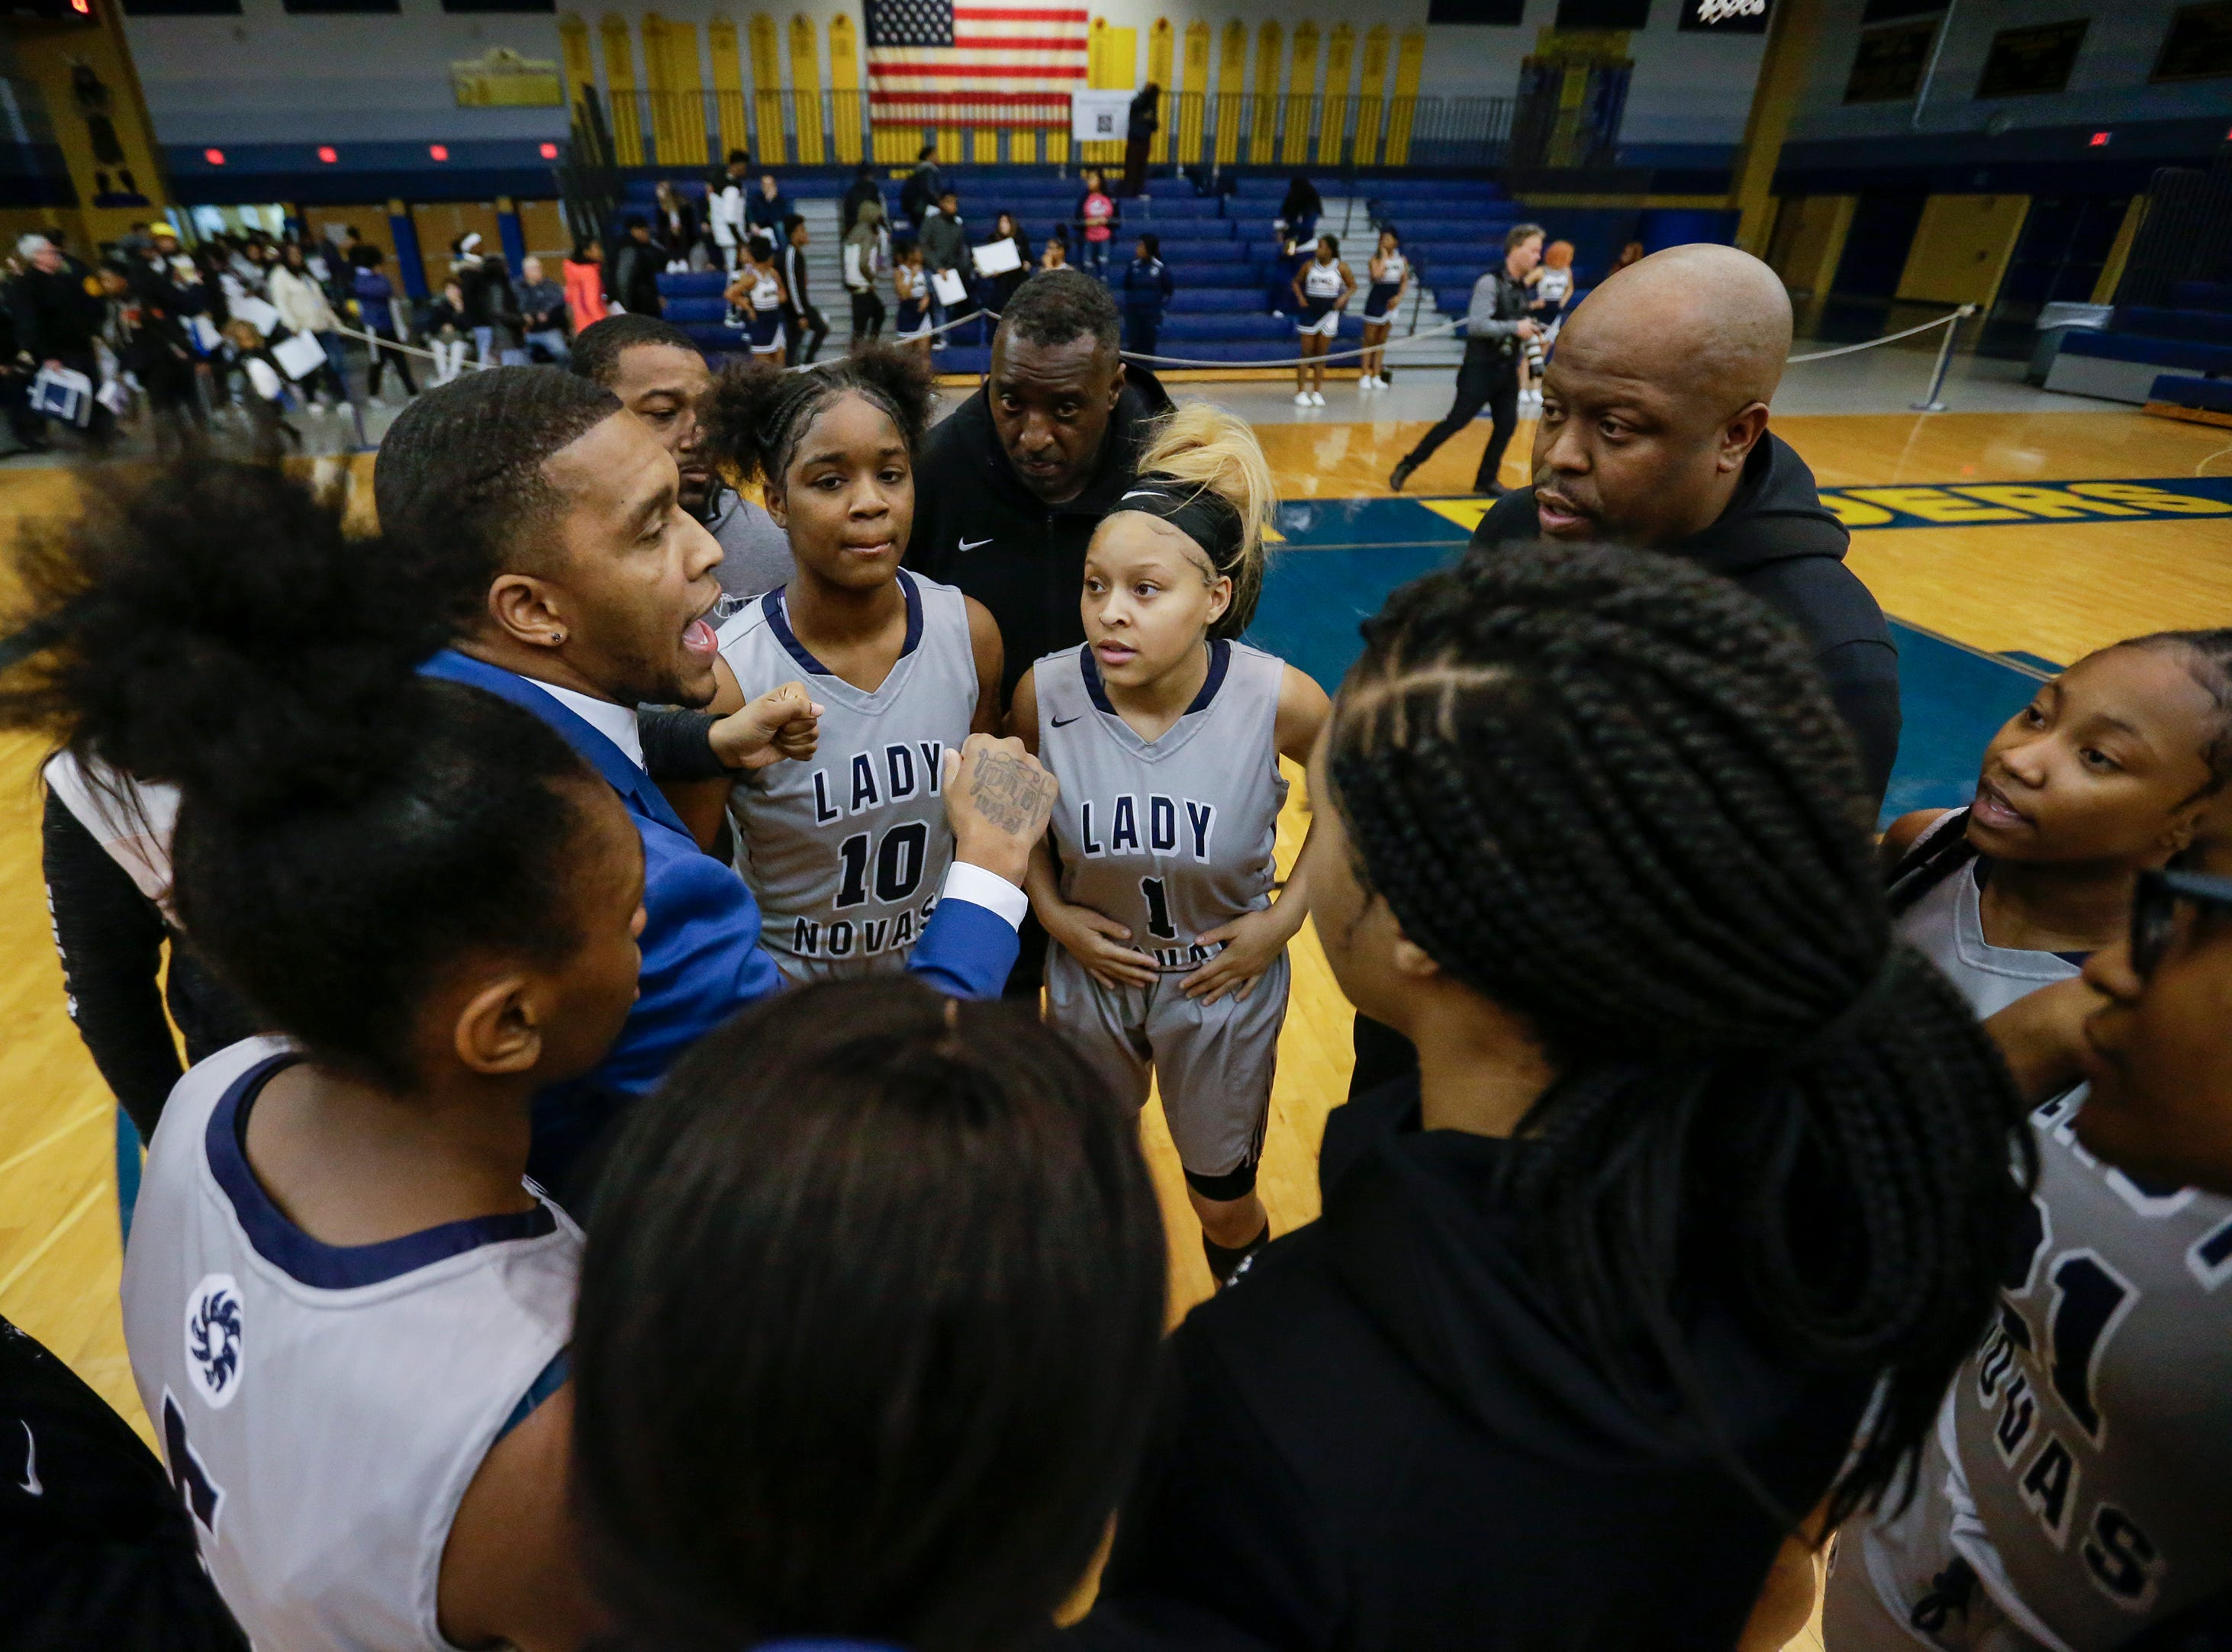 Milwaukee Academy of Science's head coach Giovanni Riley talks to his team before a WIAA Division 4 sectional championship game against Howards Grove High School at Sheboygan North High School Saturday, March 2, 2019, in Sheboygan, Wis. Joshua Clark/USA TODAY NETWORK-Wisconsin